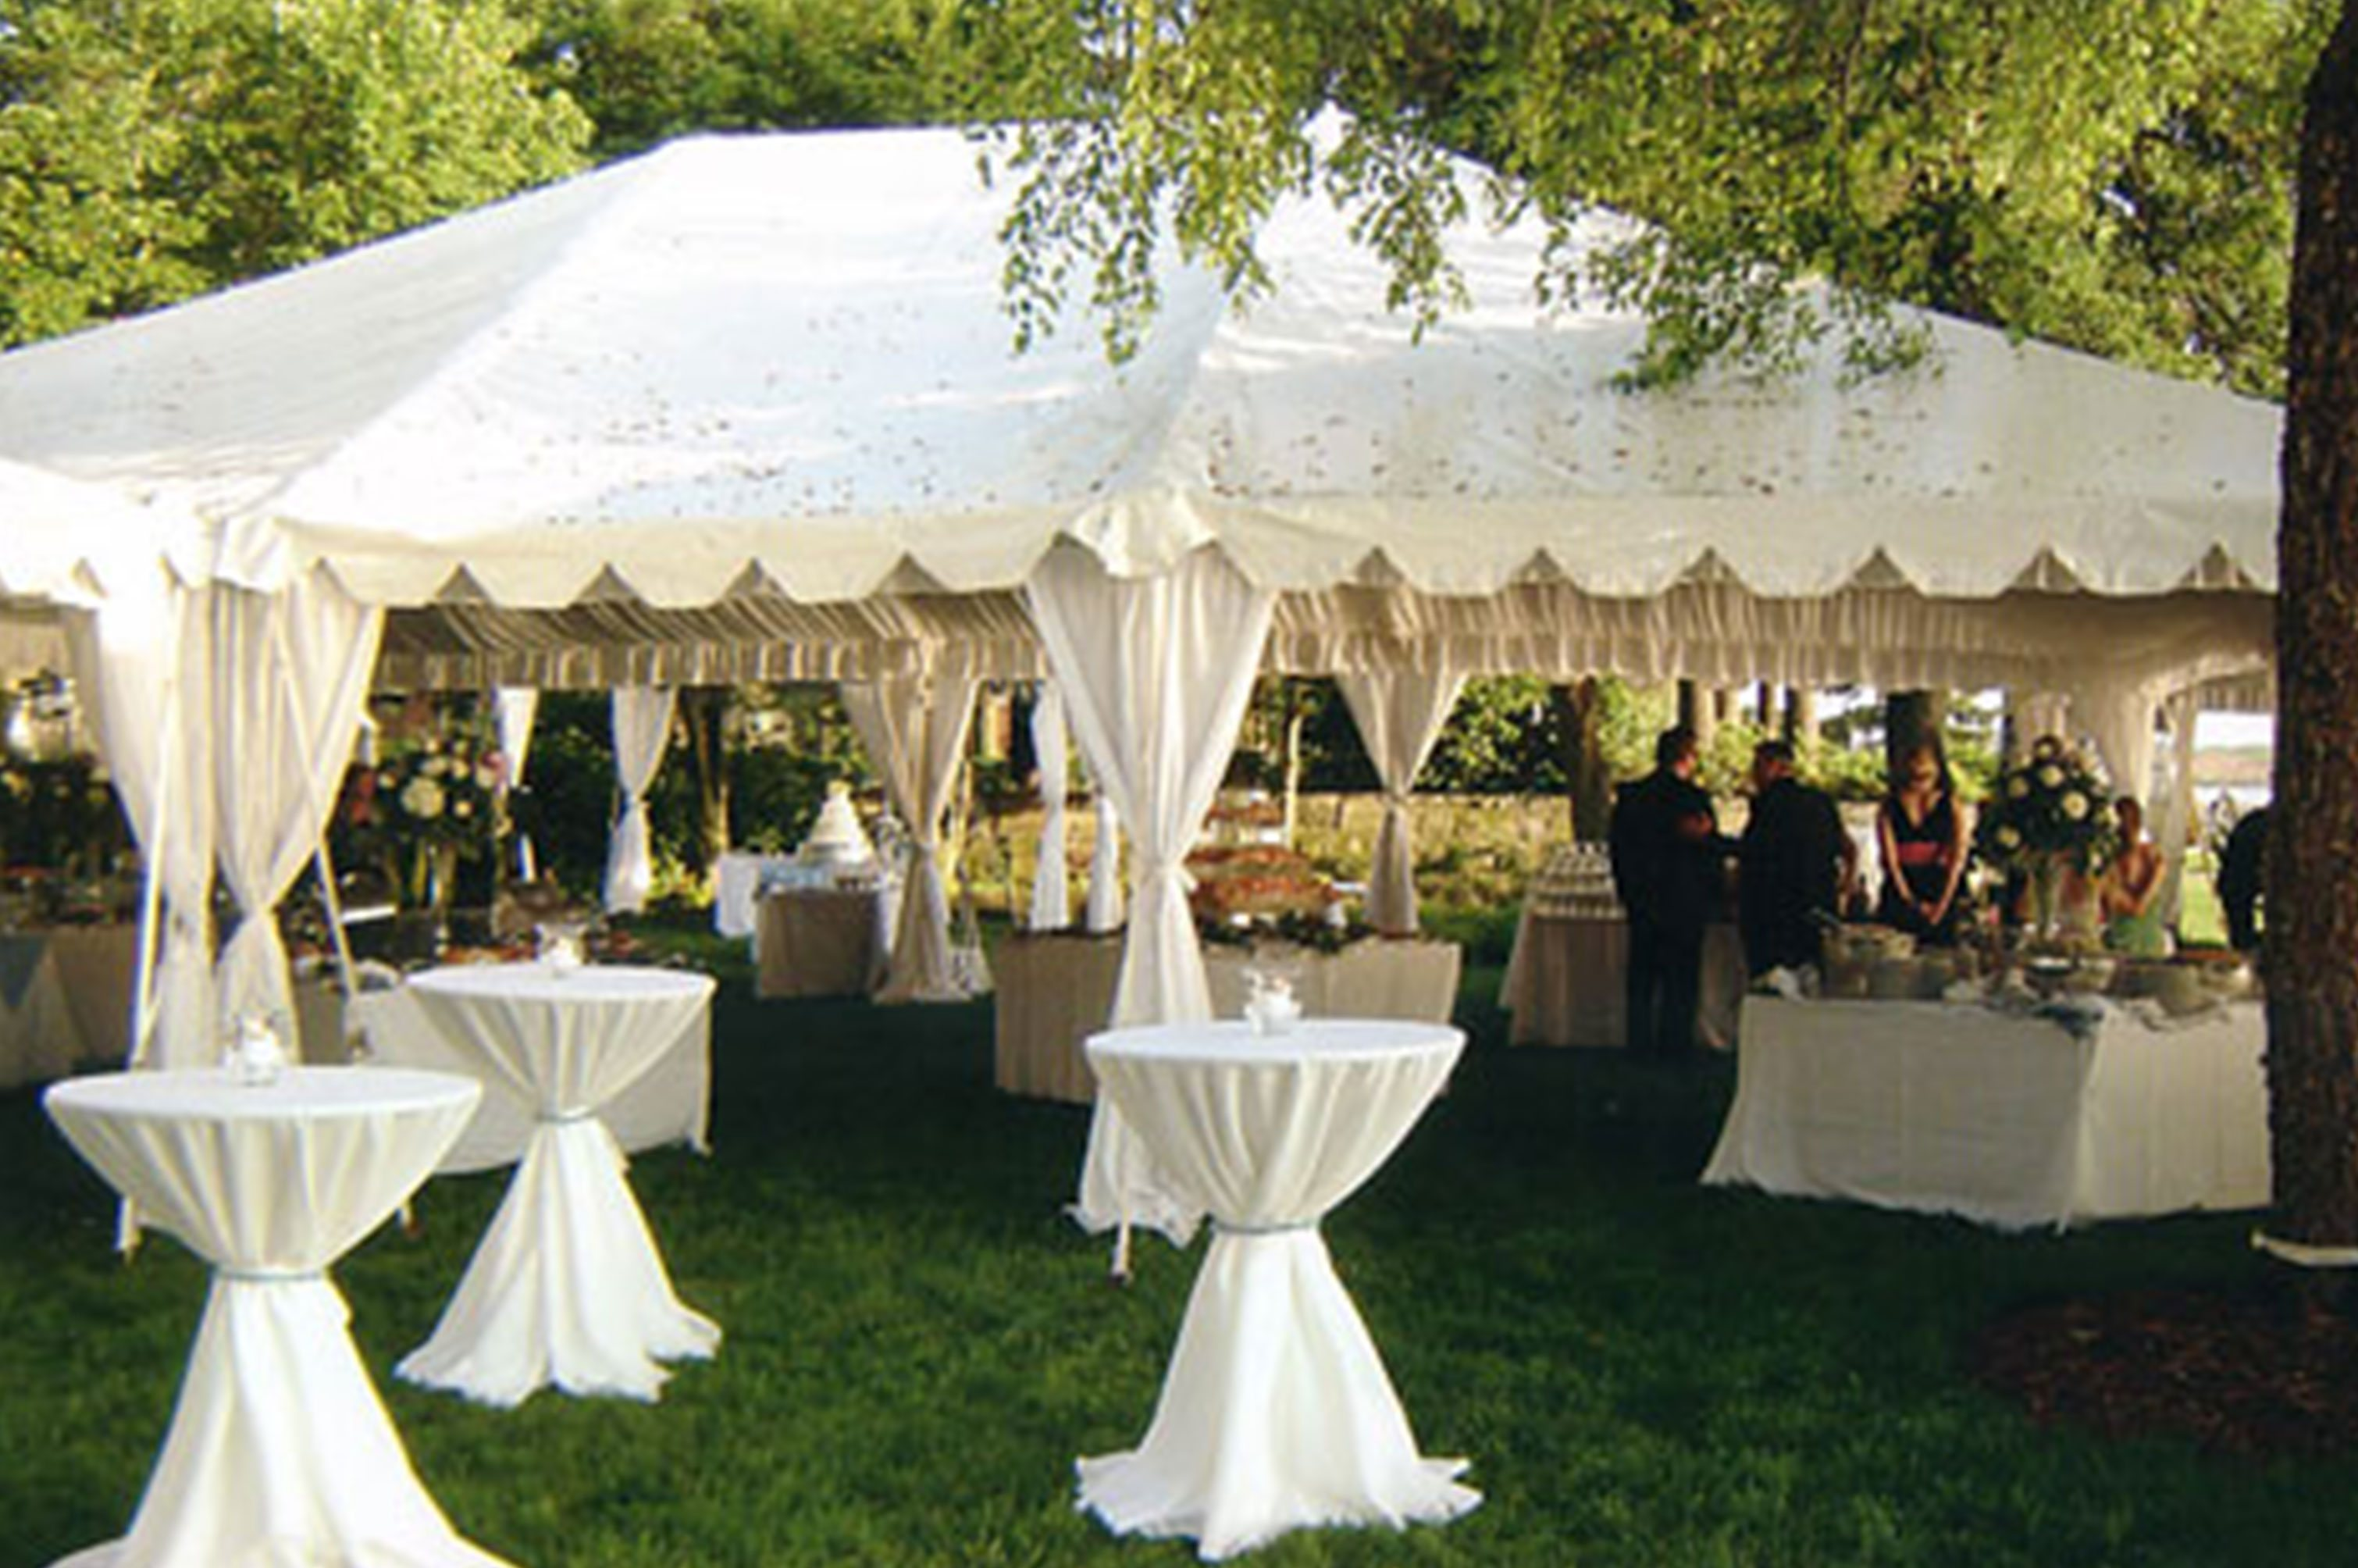 Wedding Tents For Rent | Home M M Party Rentals Long Beach Ca